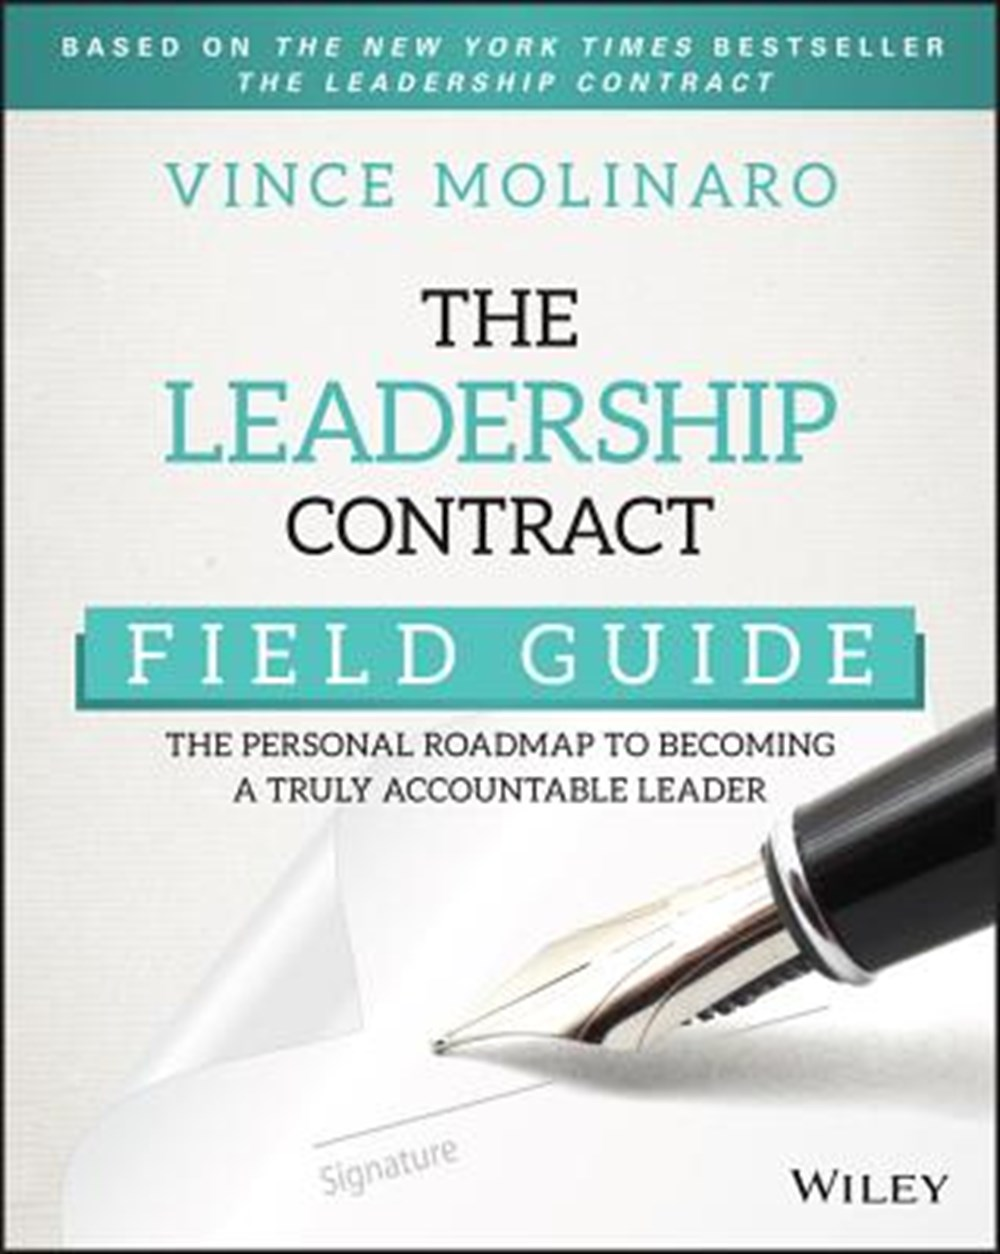 Leadership Contract Field Guide The Personal Roadmap to Becoming a Truly Accountable Leader